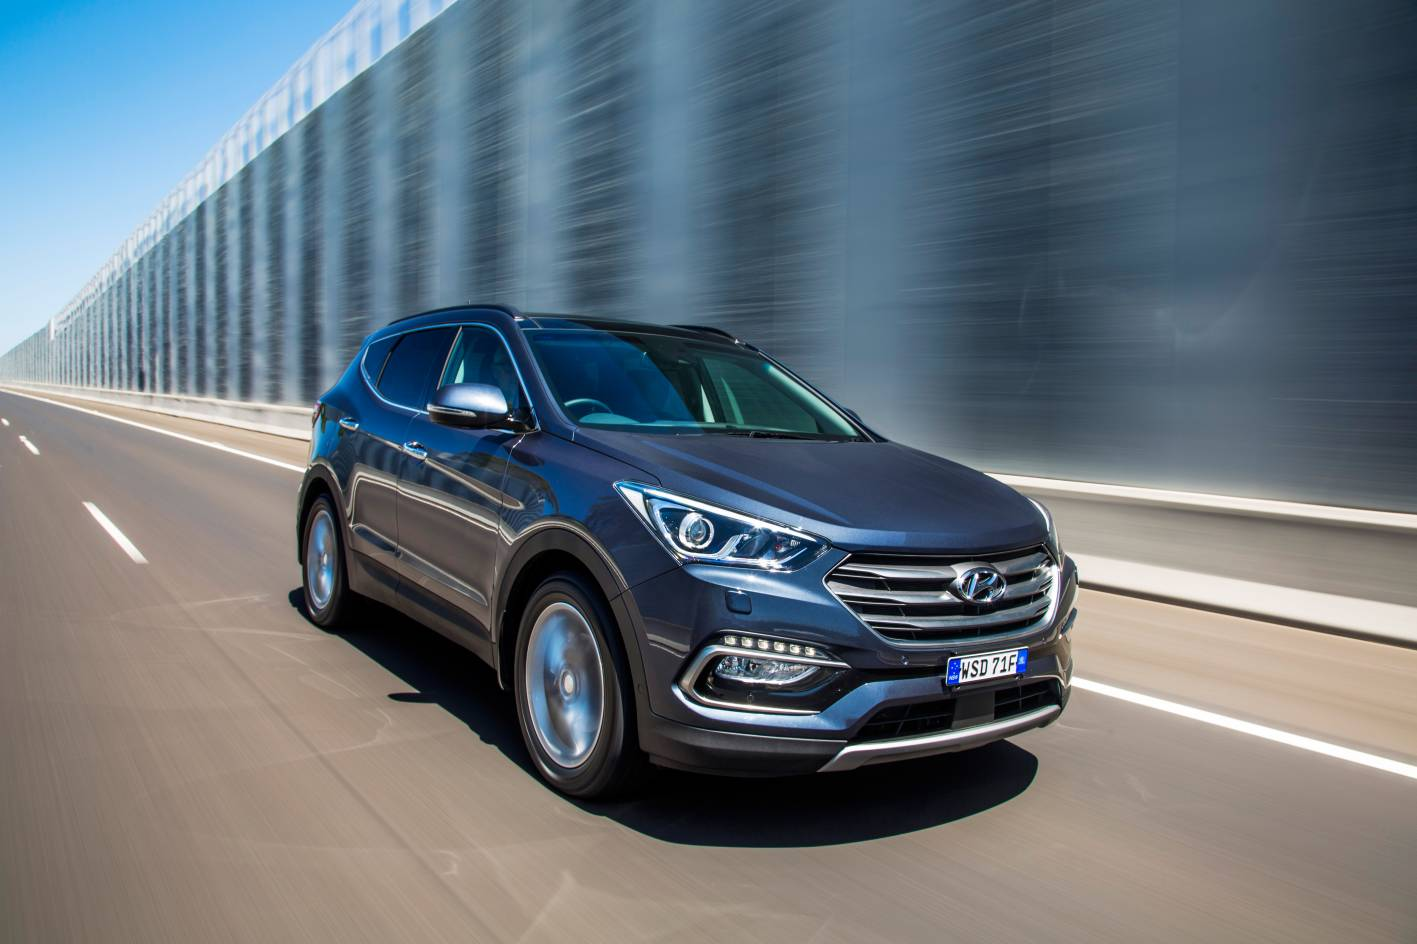 2012-2018 Santa Fe is excellent family transport and a great highway tourer